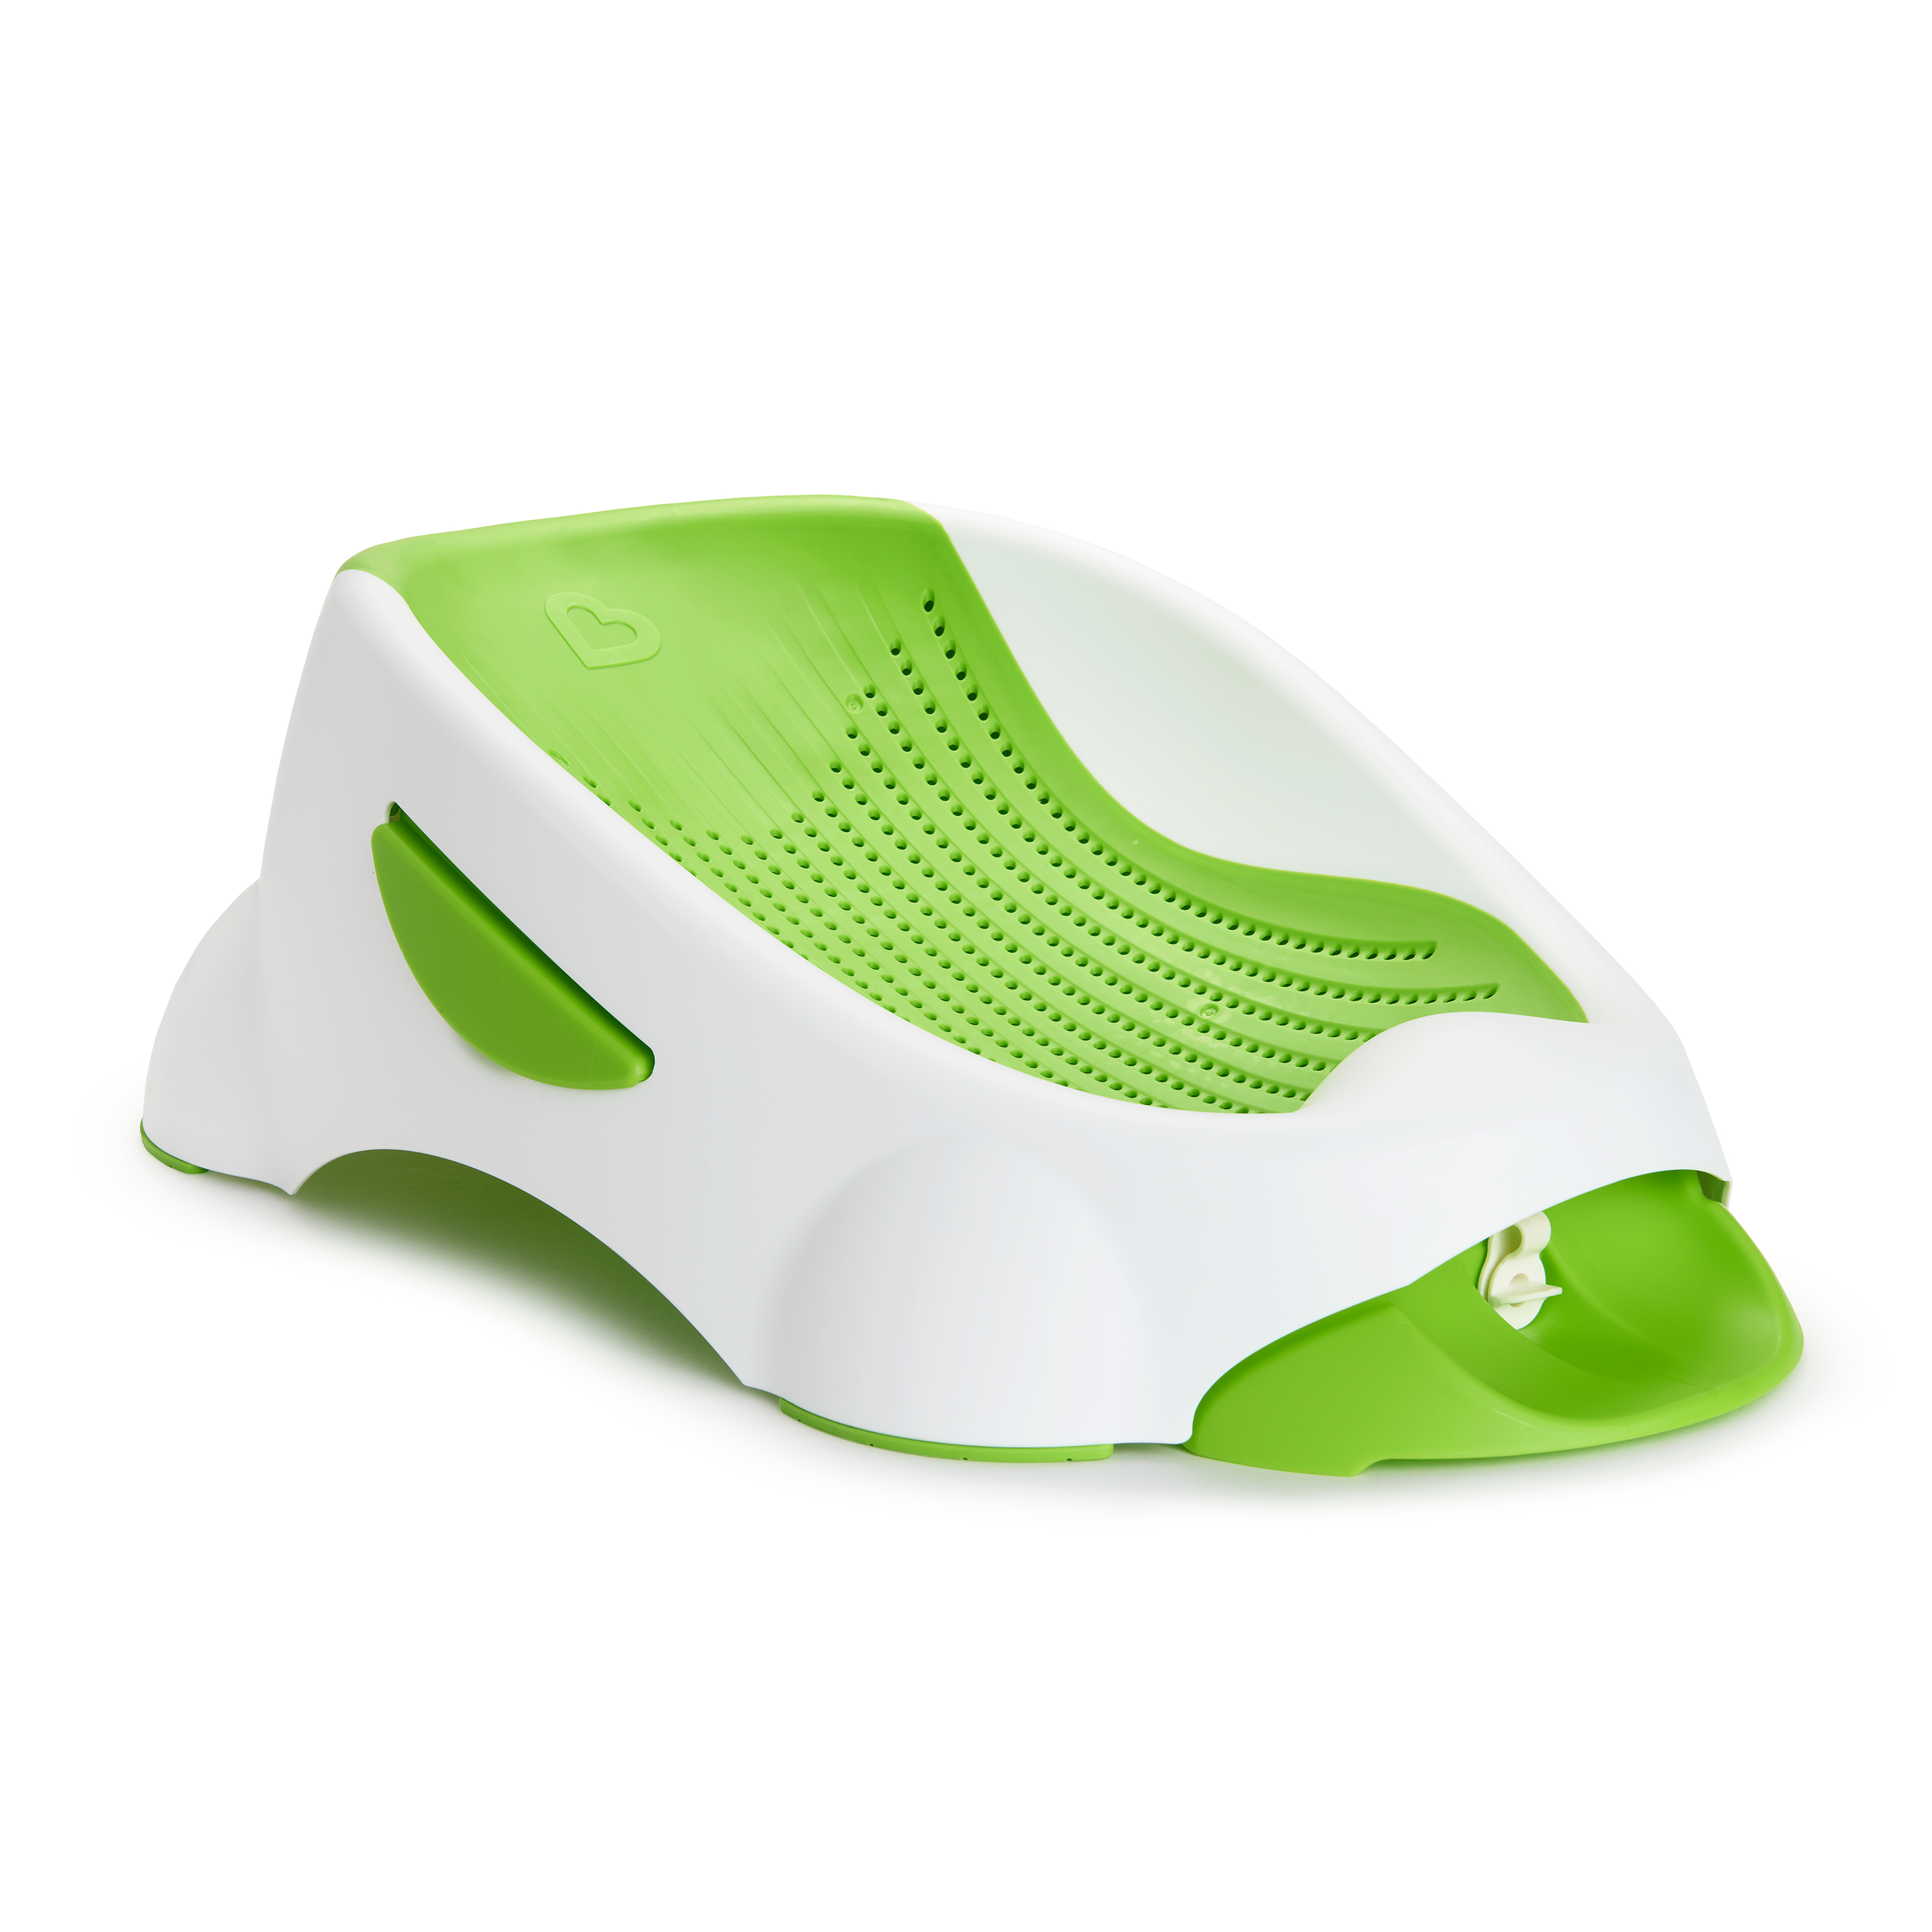 Munchkin Clean Cradle Infant Bath Tub, Green